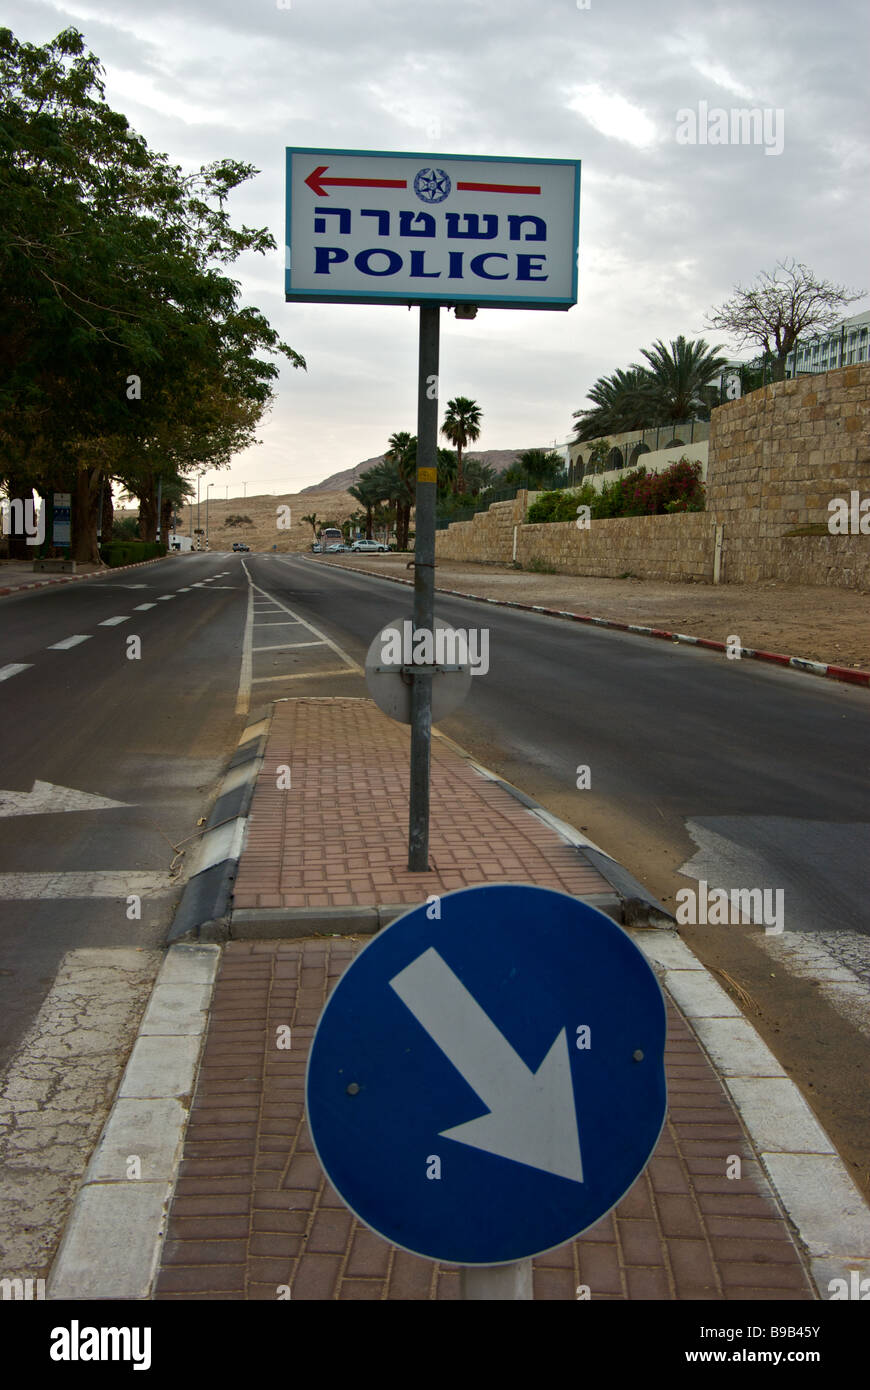 Sign in Hebrew and English on centre median of waterside drive indicating location of police station - Stock Image